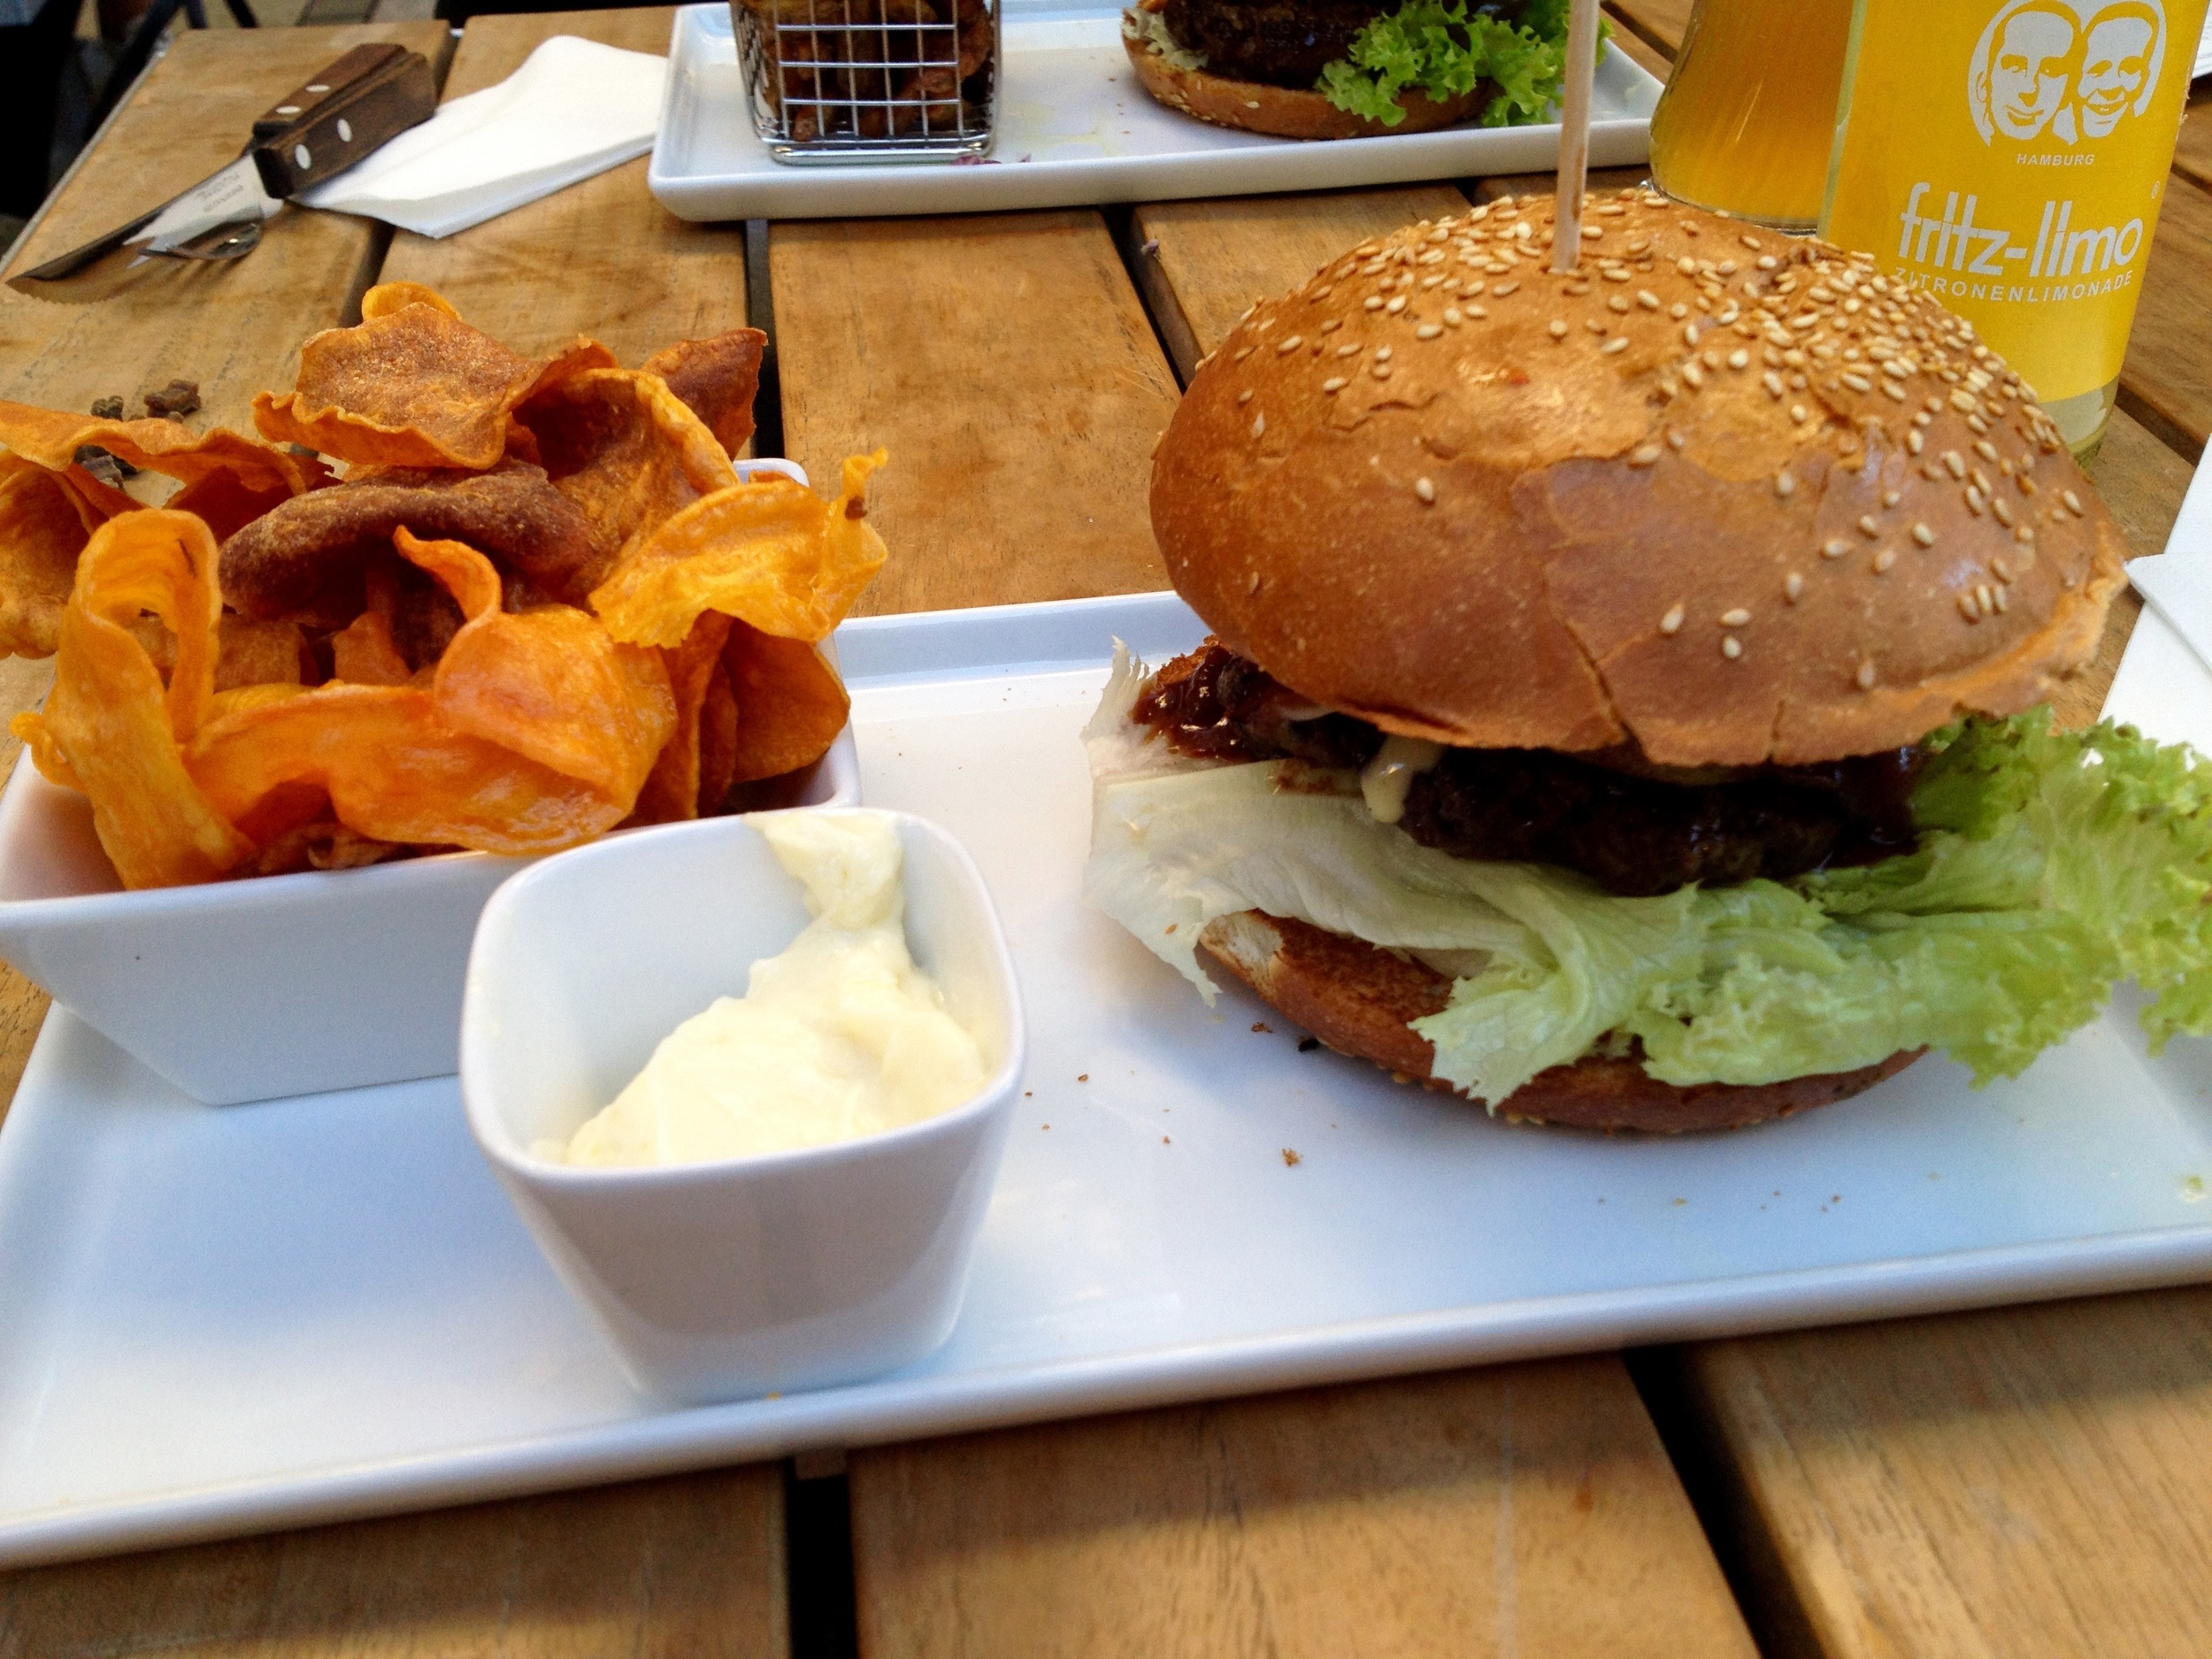 American BBQ burgerwith sweet potato chips